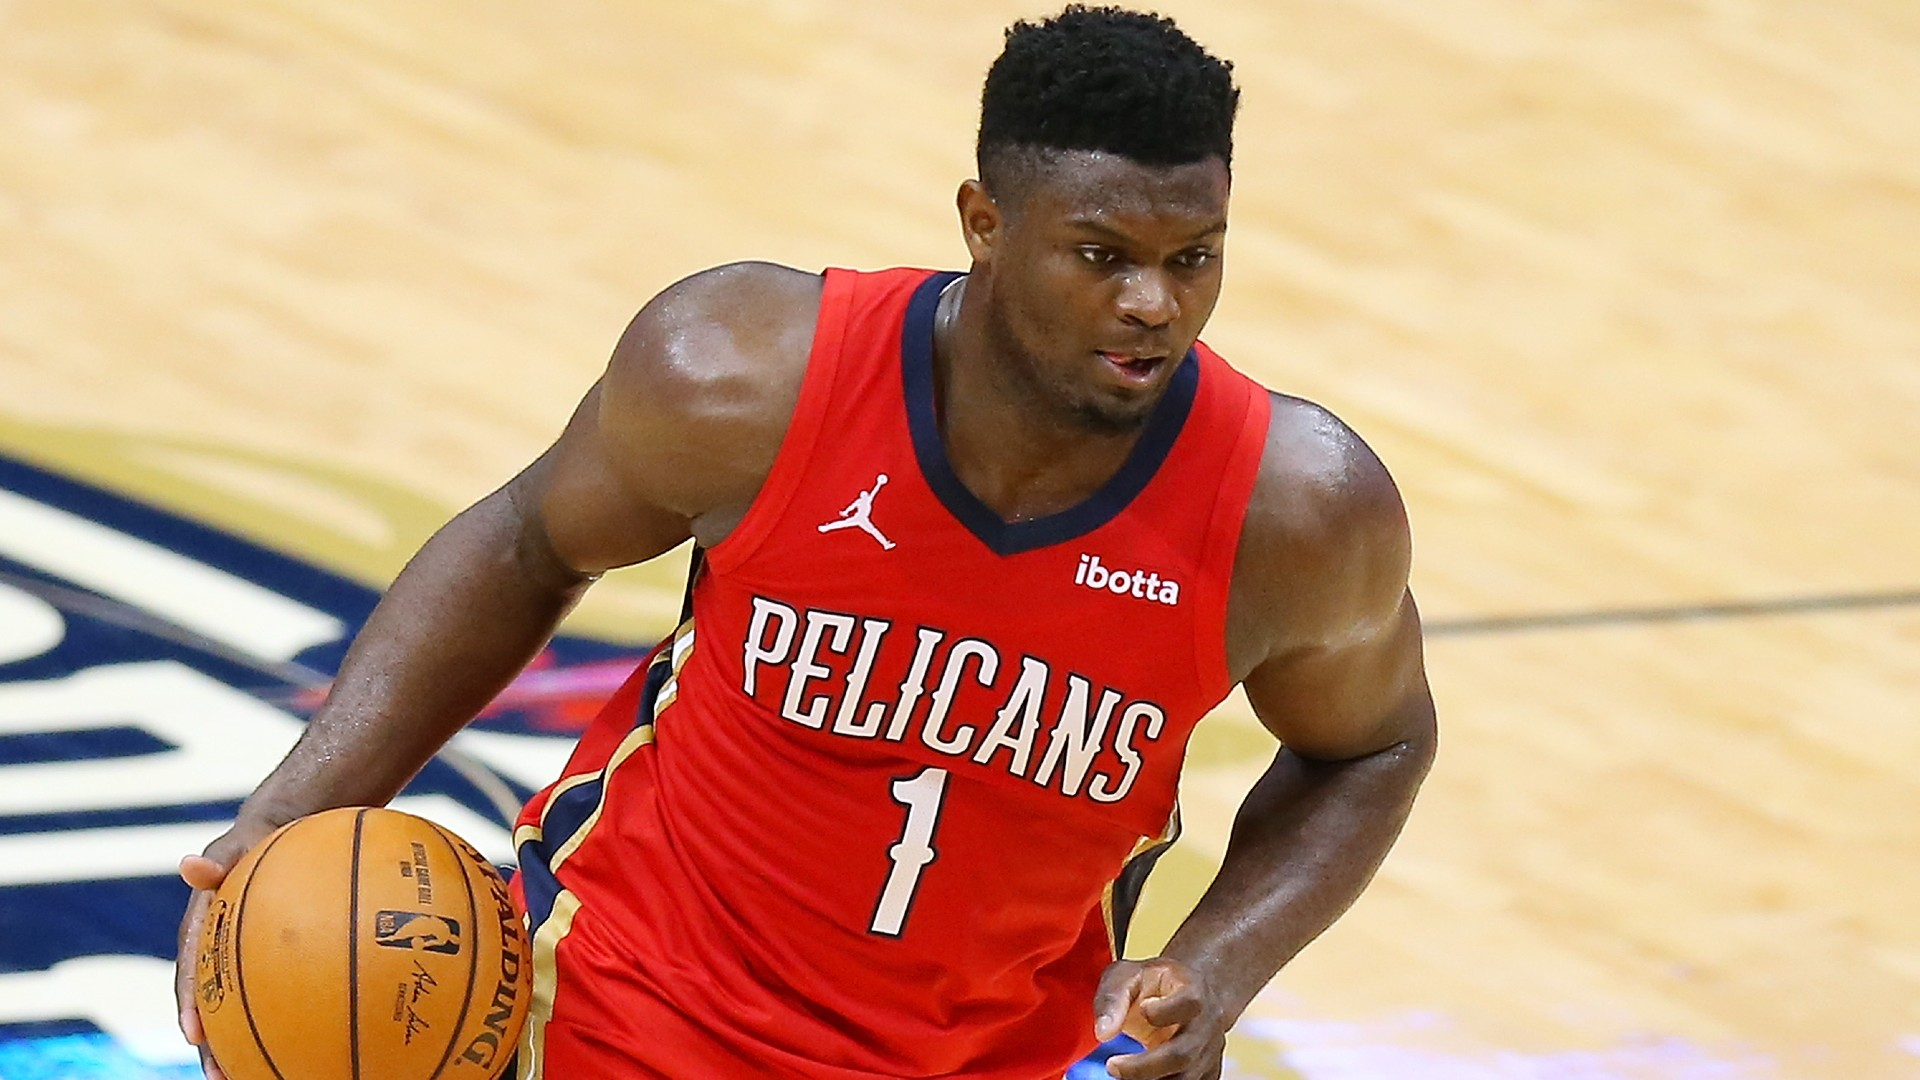 Pelicans star Williamson ruled out of Clippers clash